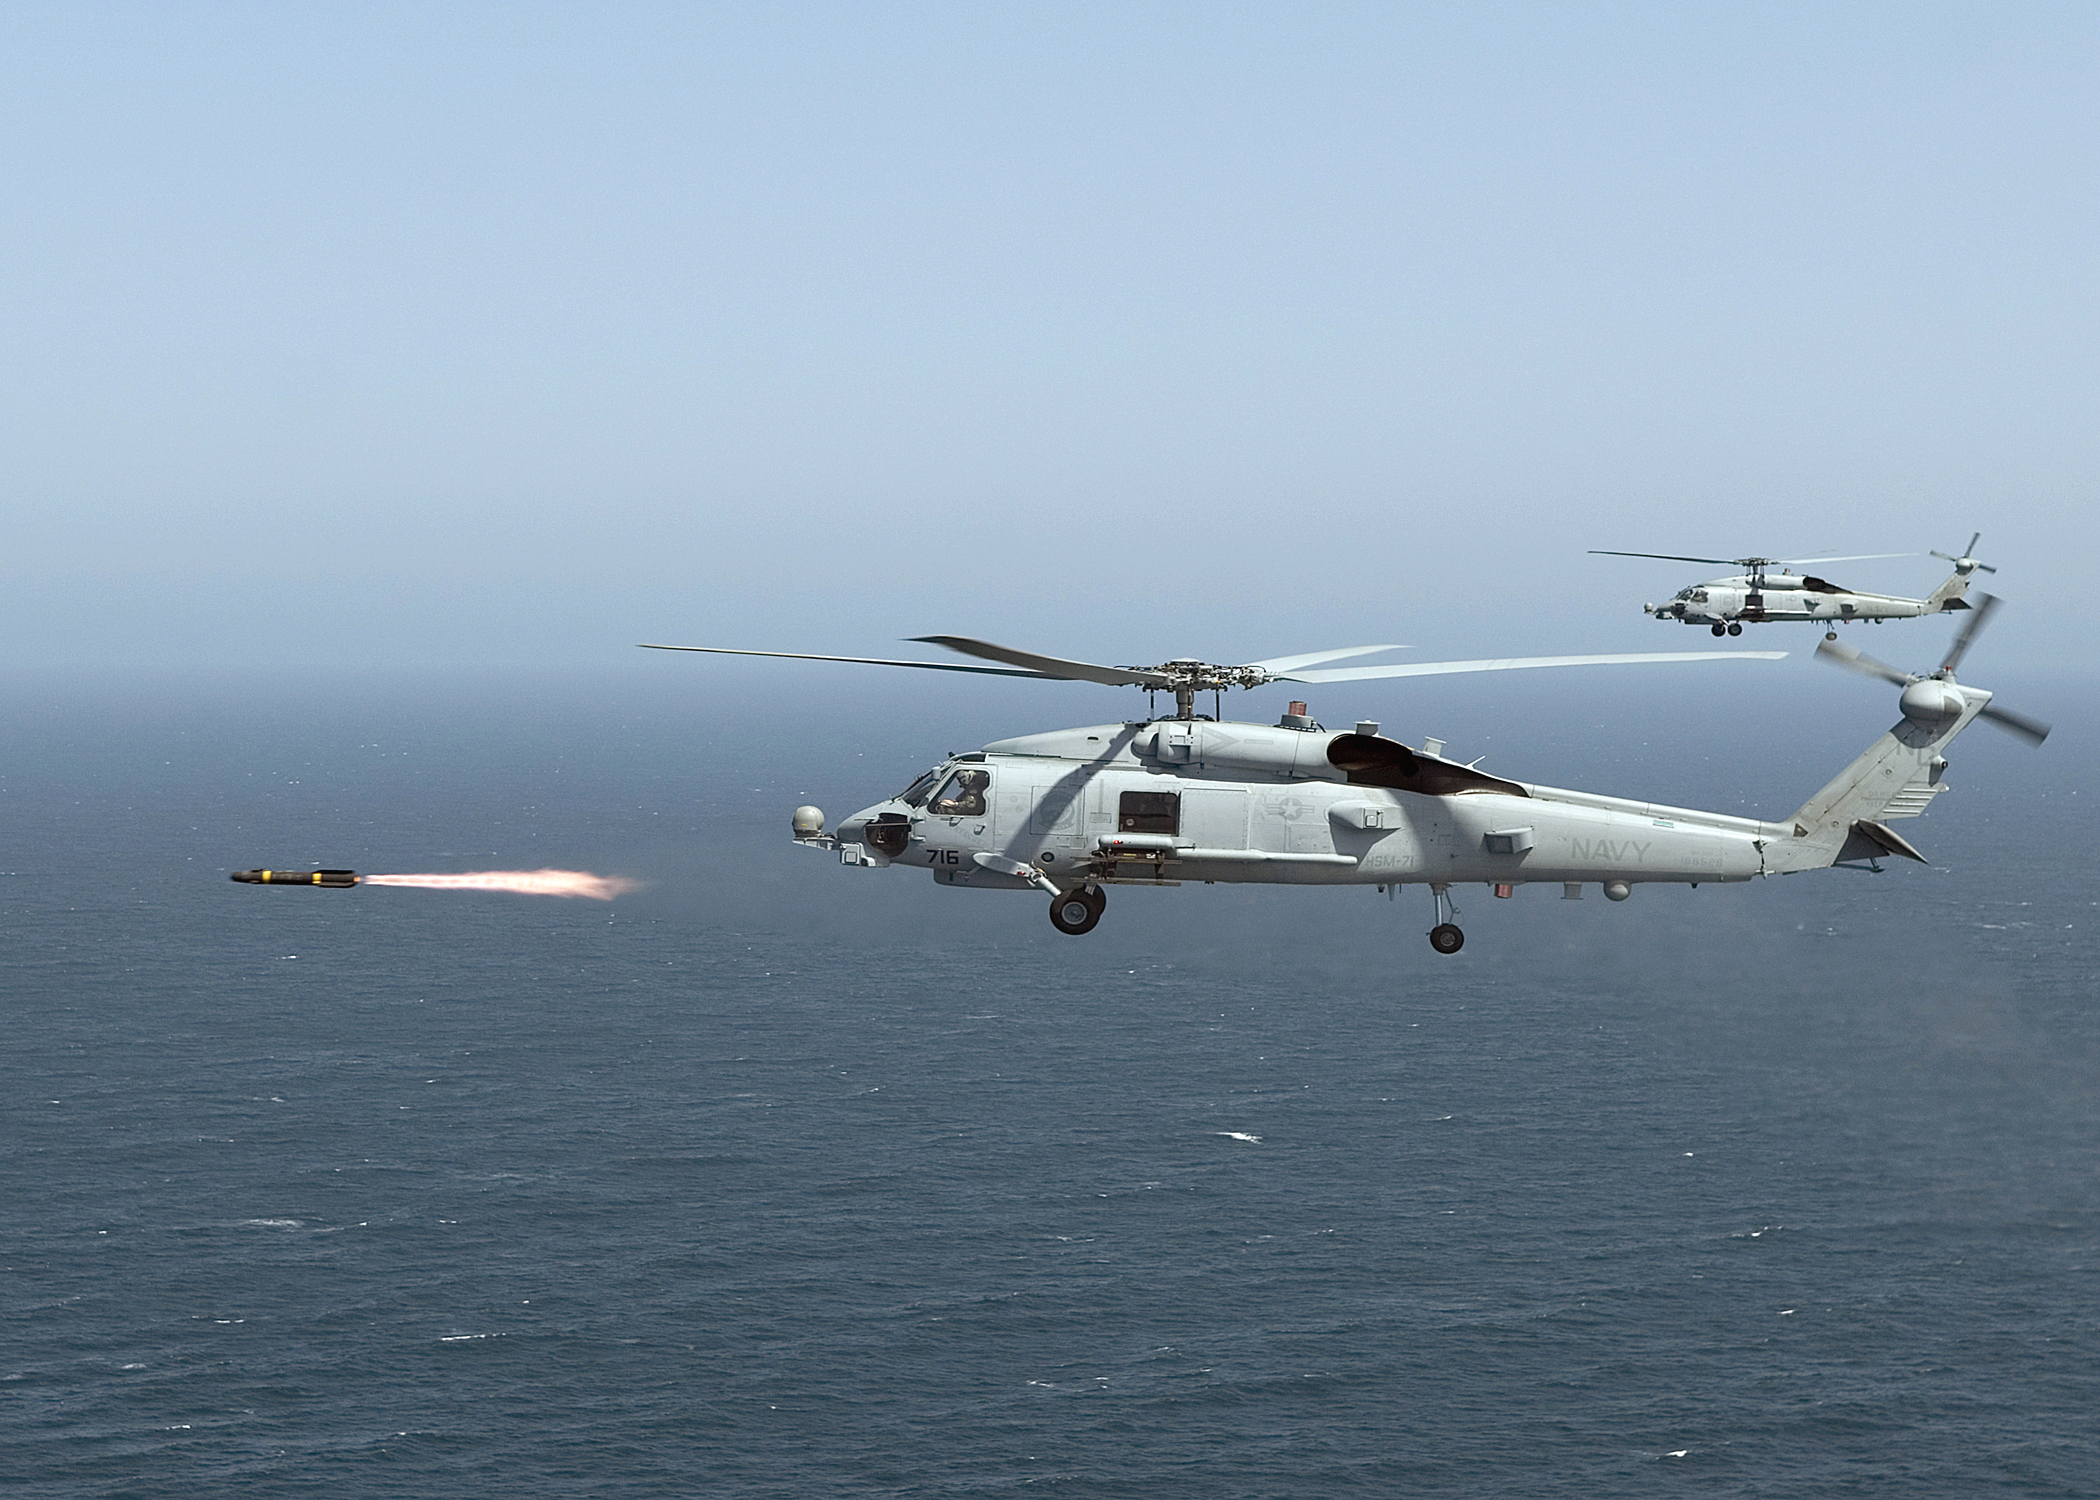 File:MH-60R Seahawk and Hellfire.jpg - Wikimedia Commons